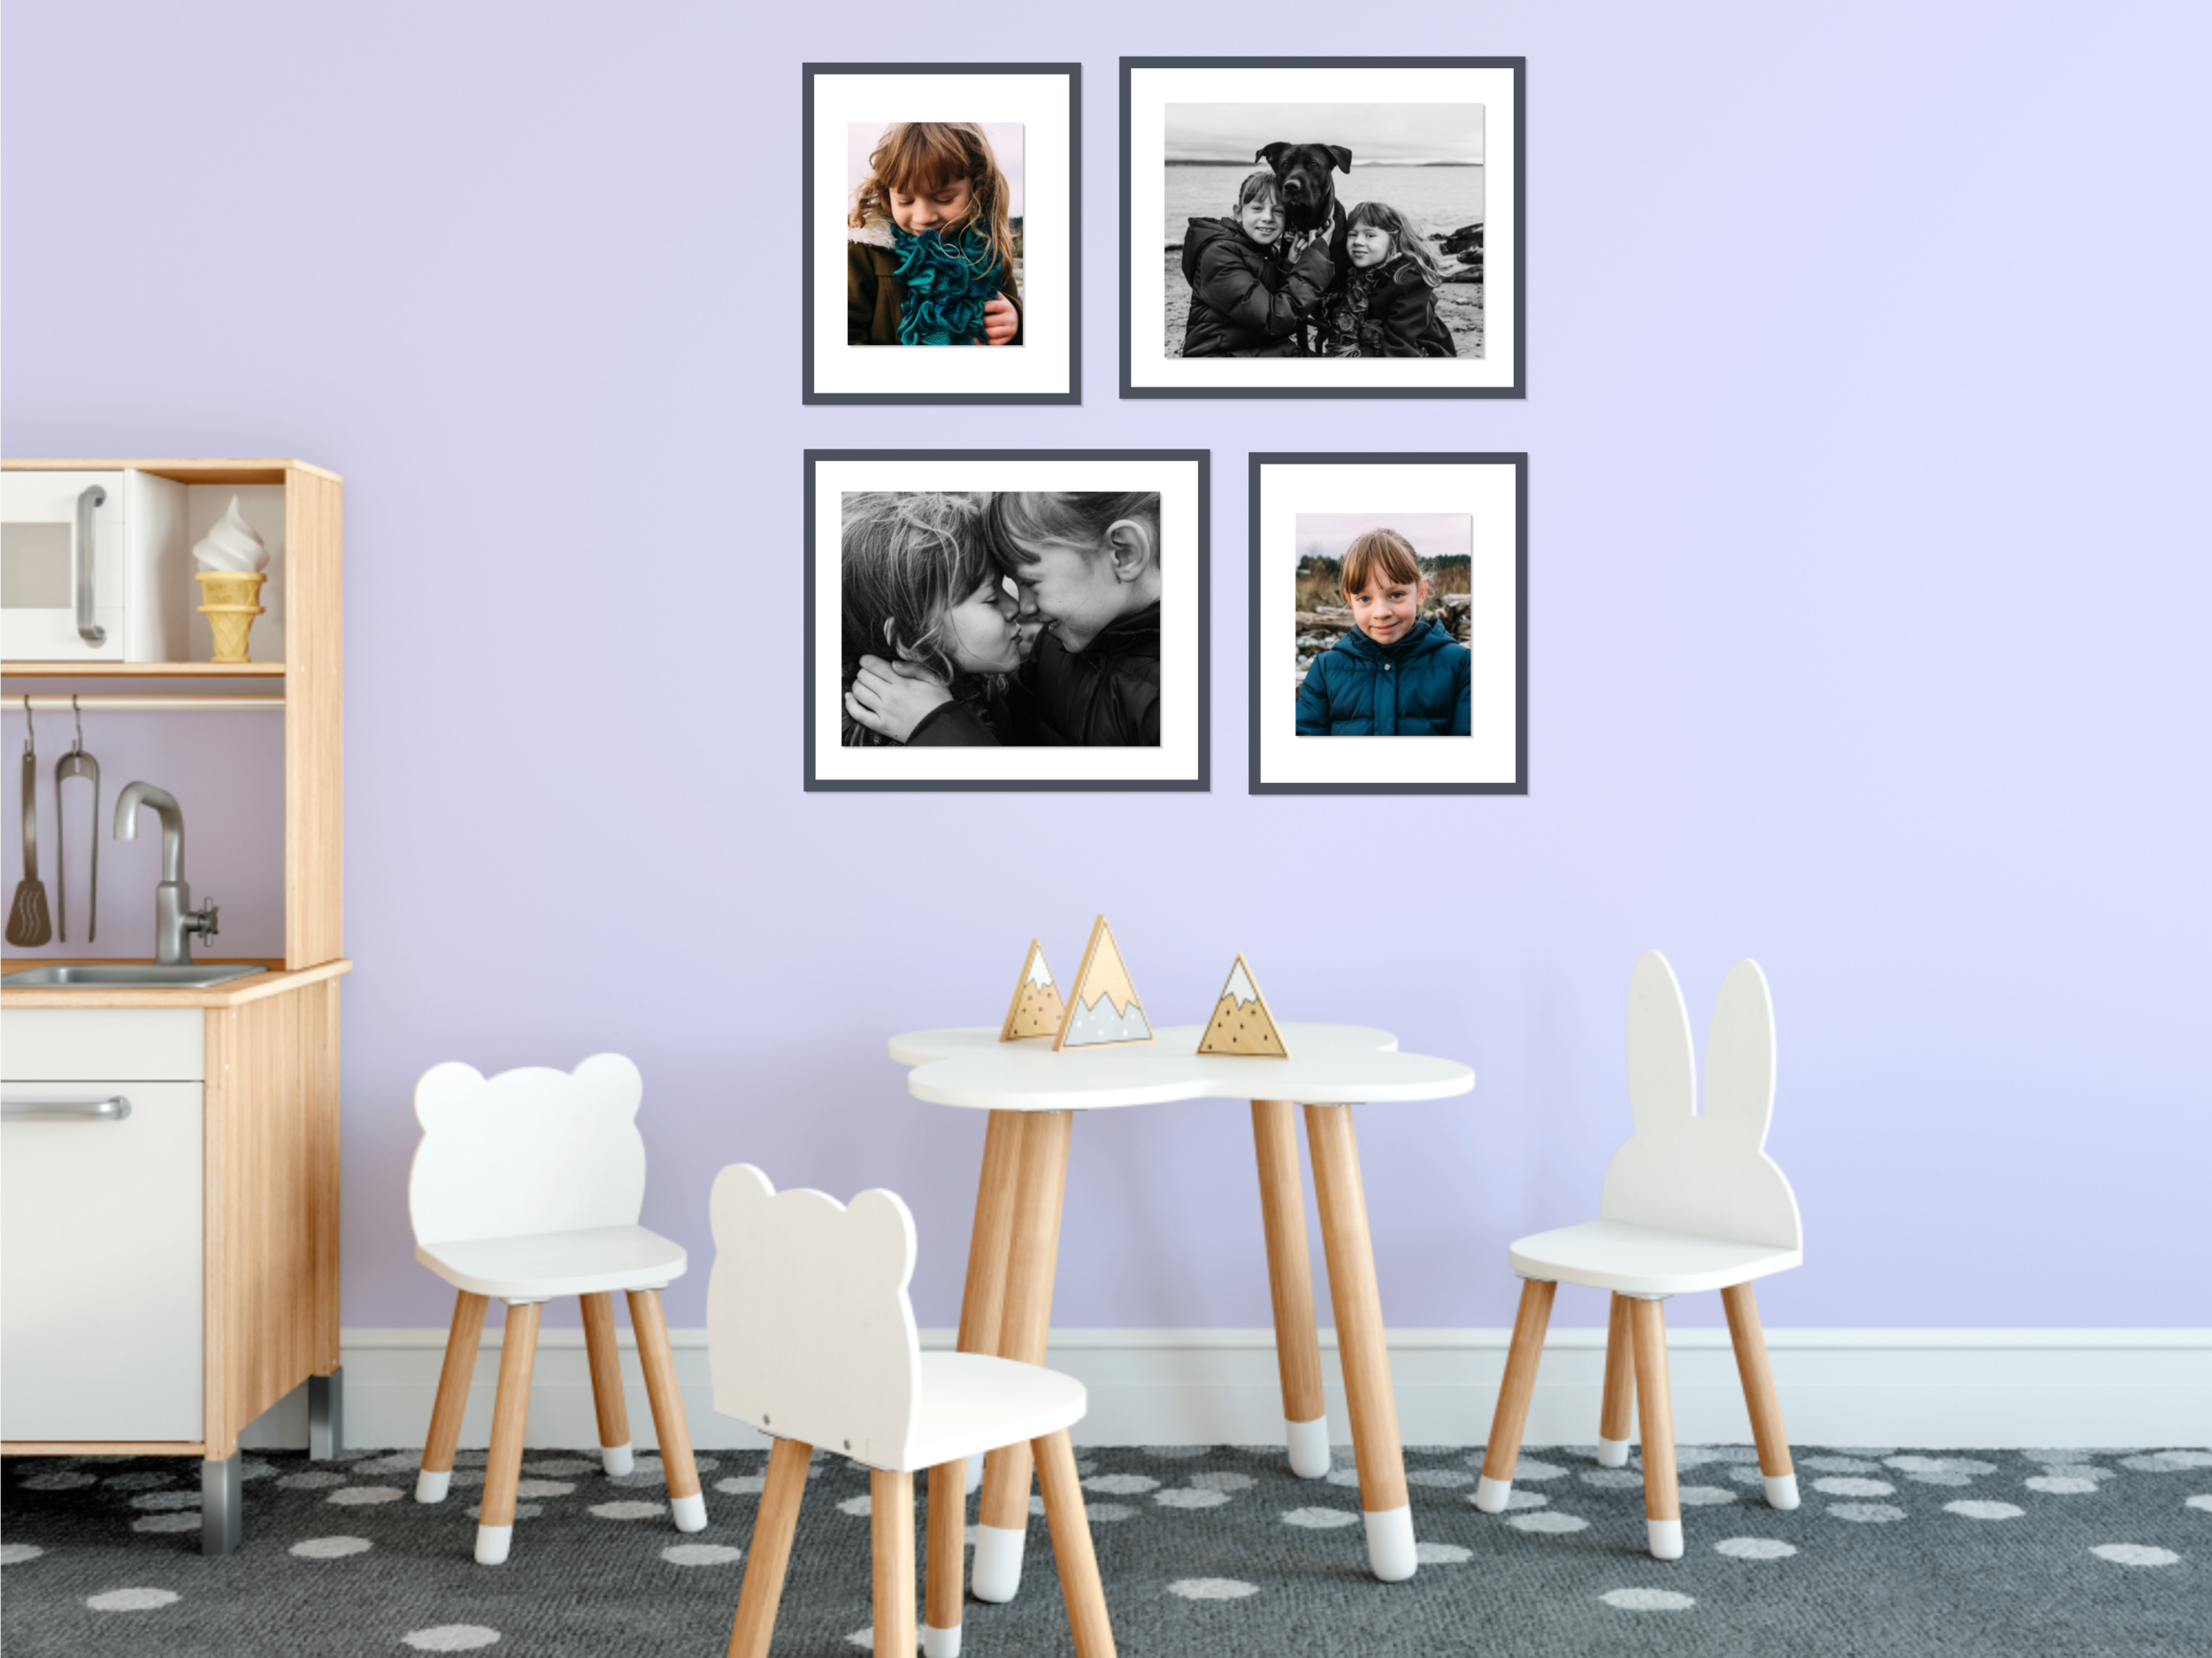 Playroom gallery wall ideas victoria bc (2).png